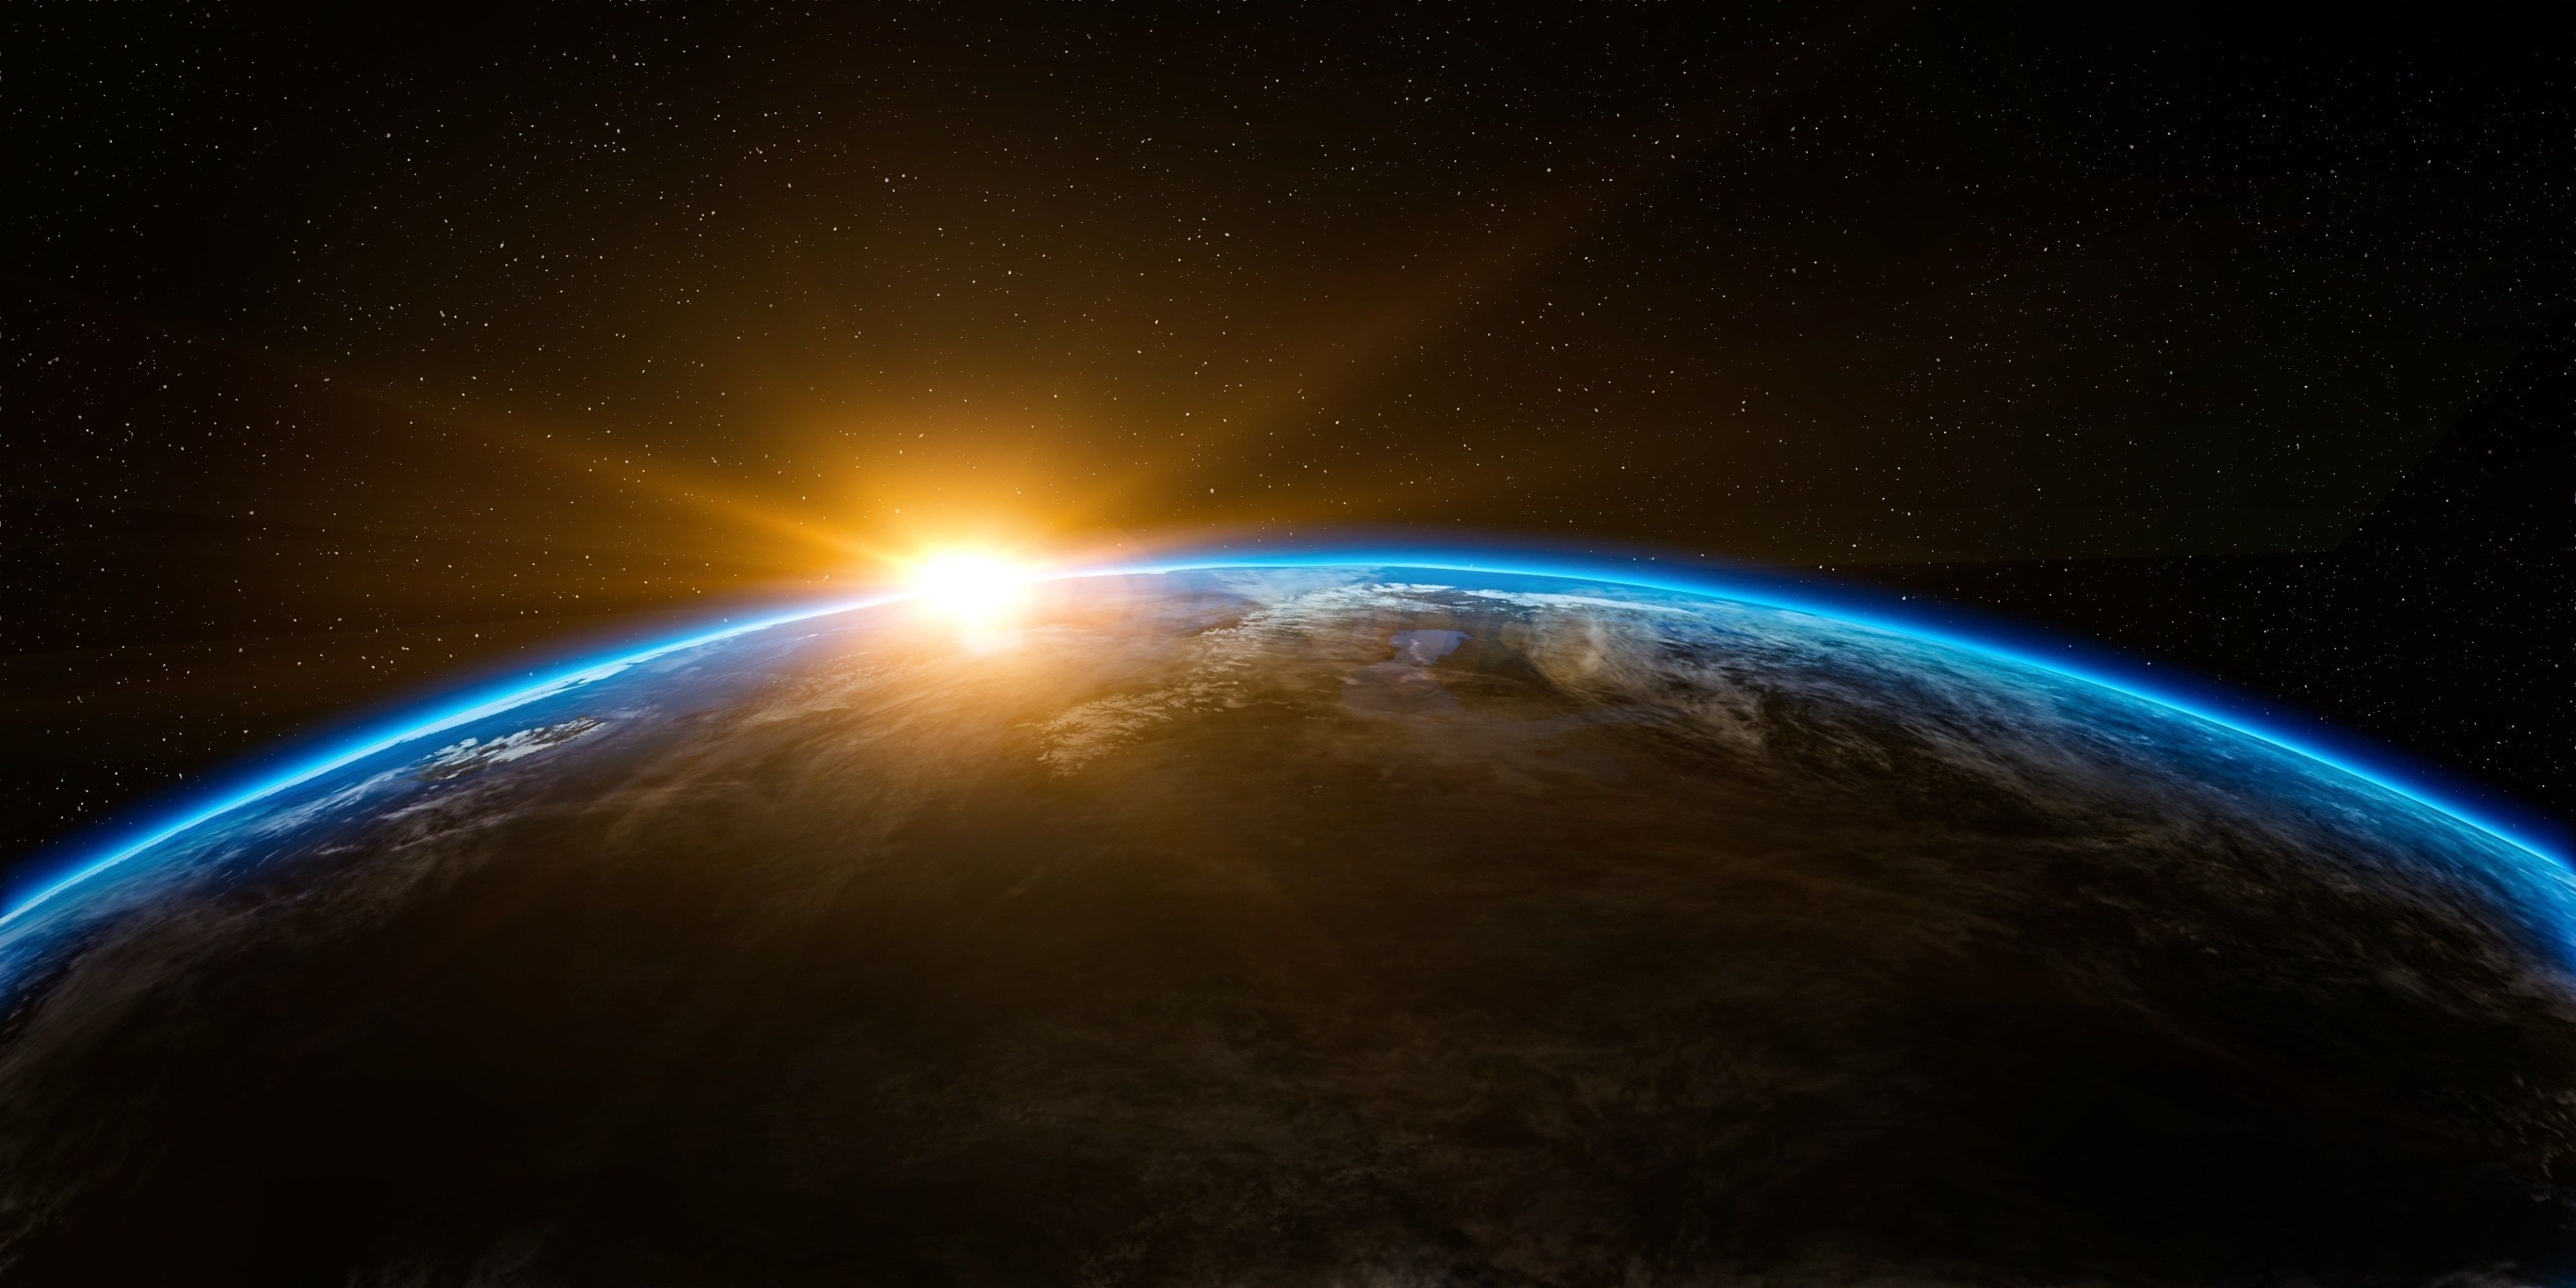 3840x1920 3840x1920 earth 4k wallpaper for computer hd | wallpapers and ...